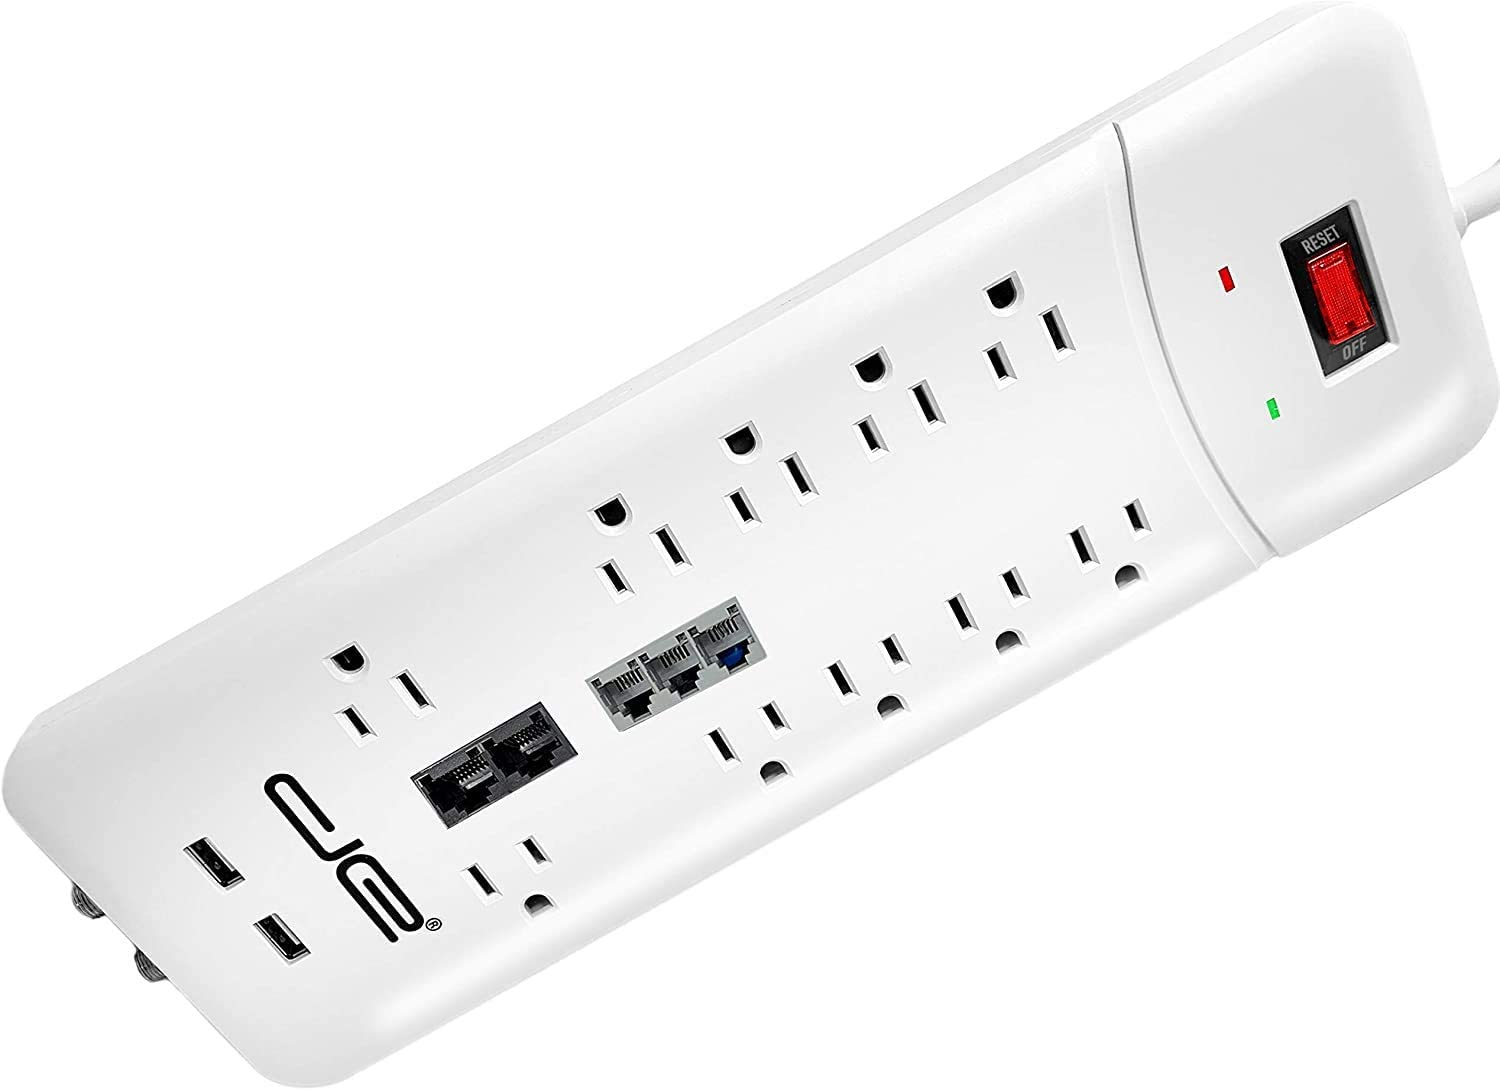 10 Outlet Surge Protector 8 FT White